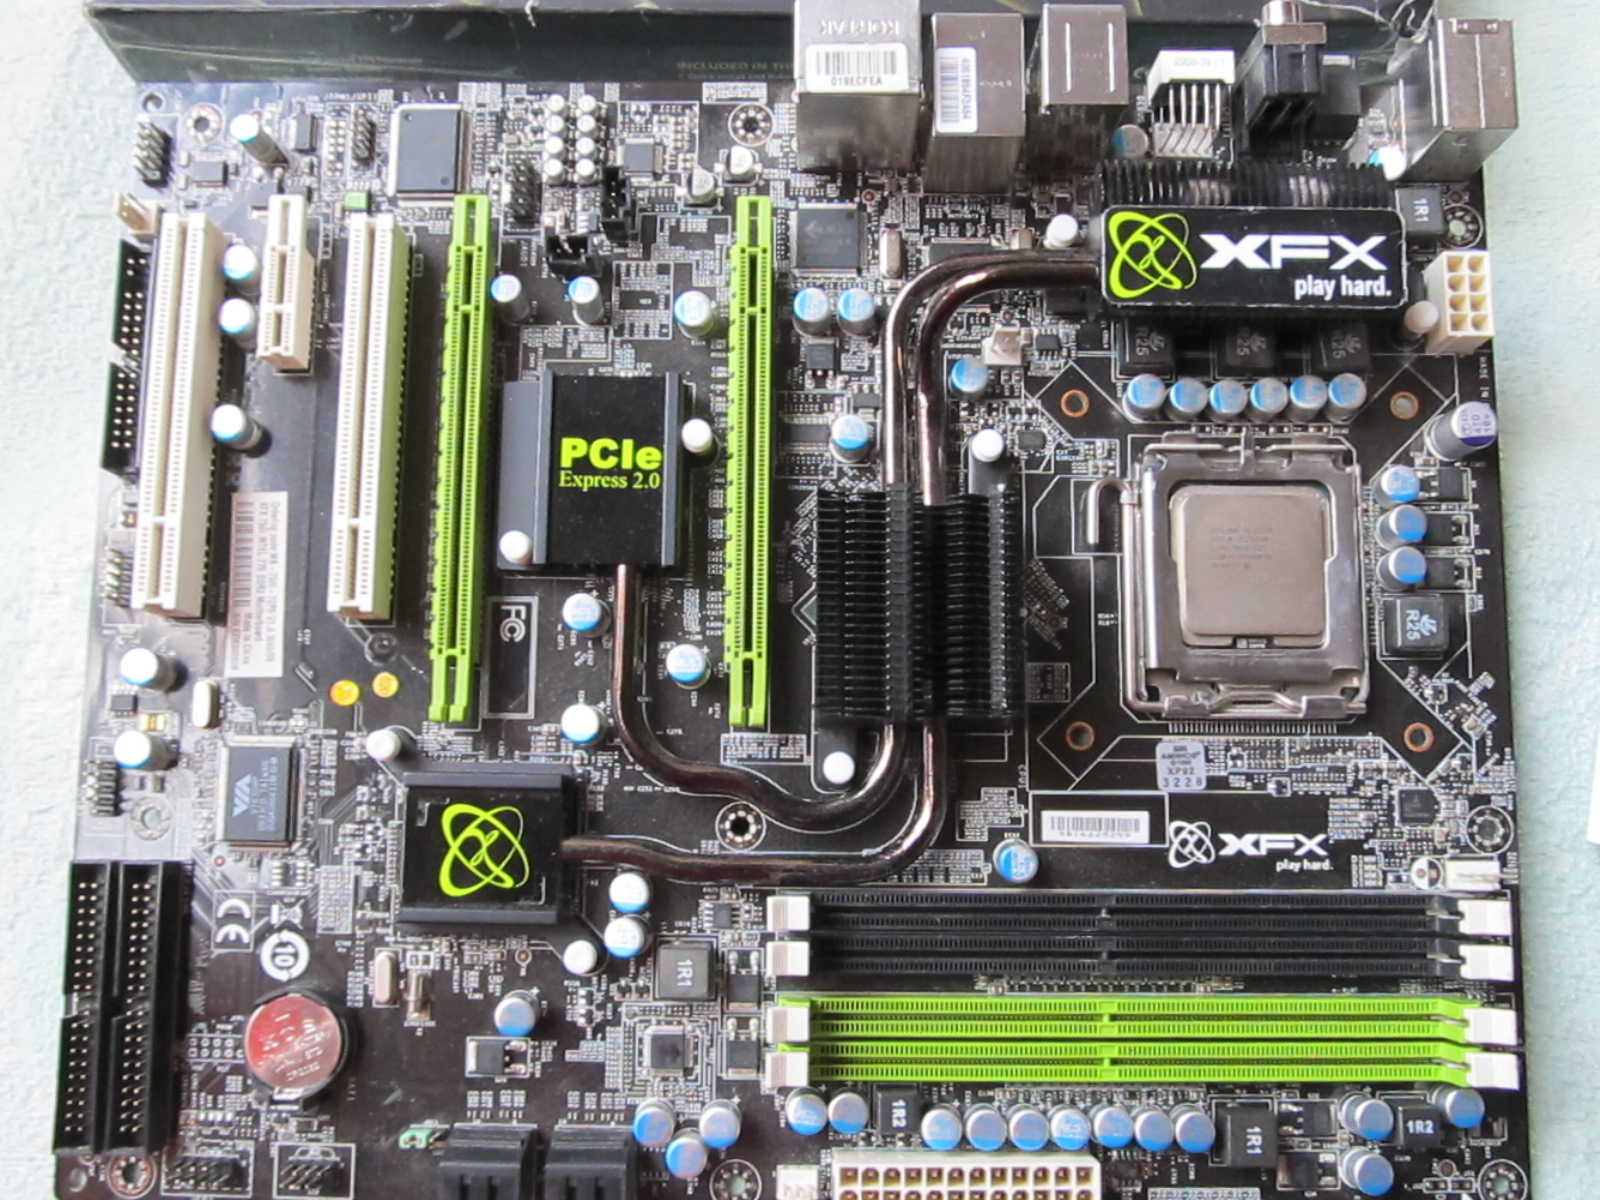 xfx nforce 750i sli motherboard manual